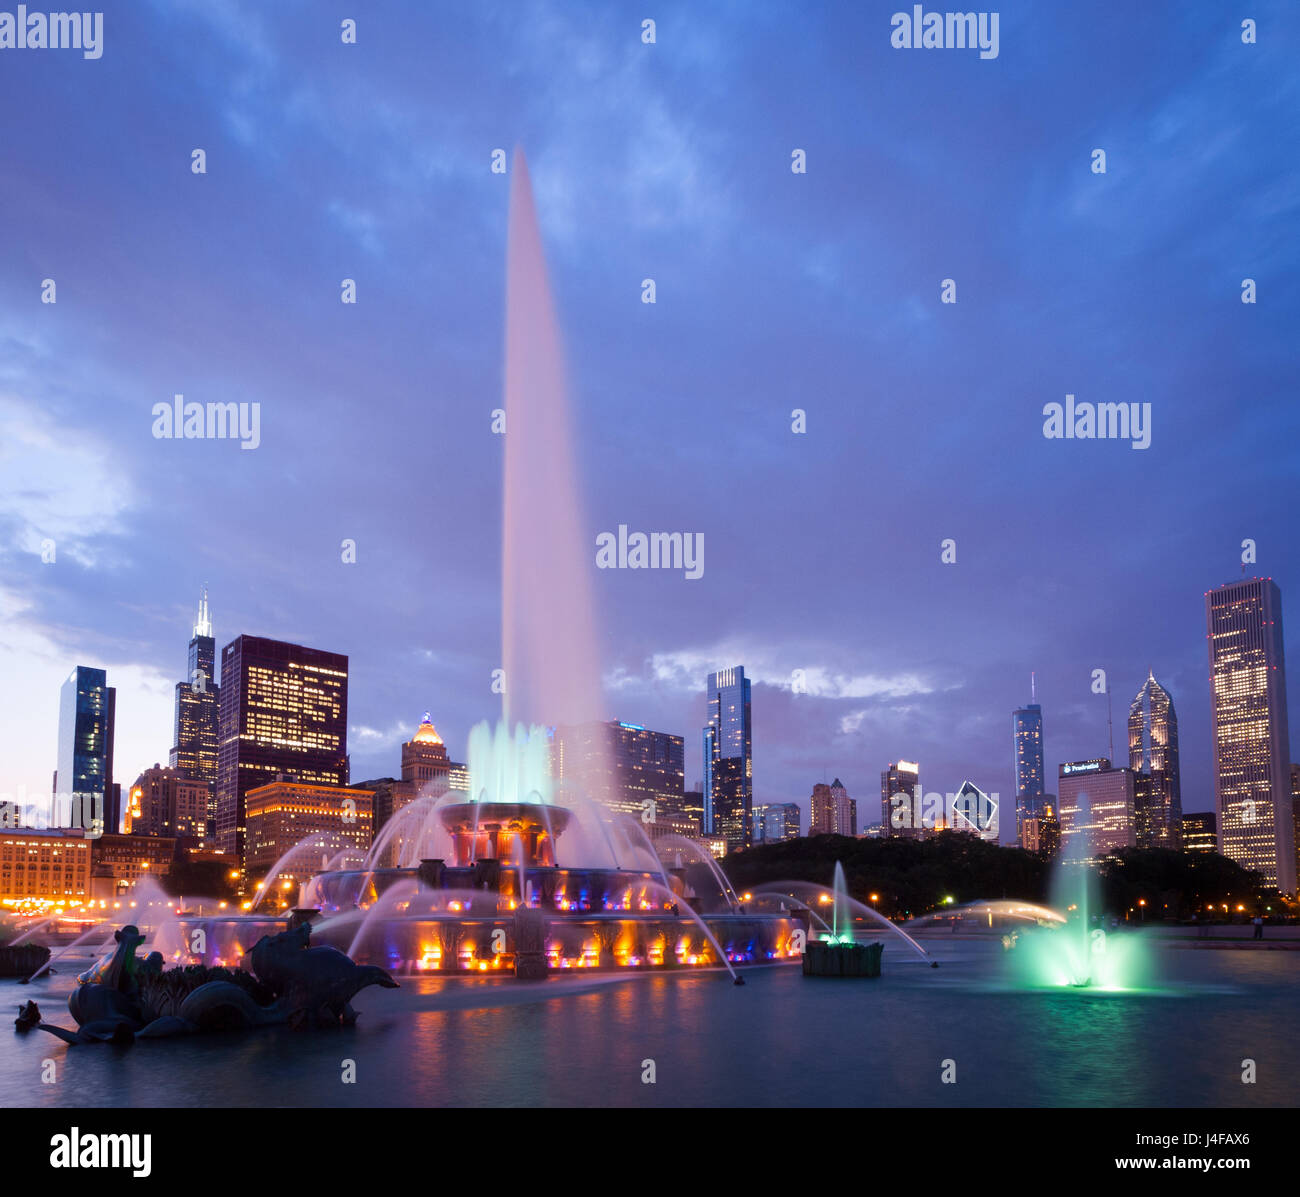 The spectacular Buckingham Fountain at night, in summer, in Grant Park in Chicago, Illinois. - Stock Image